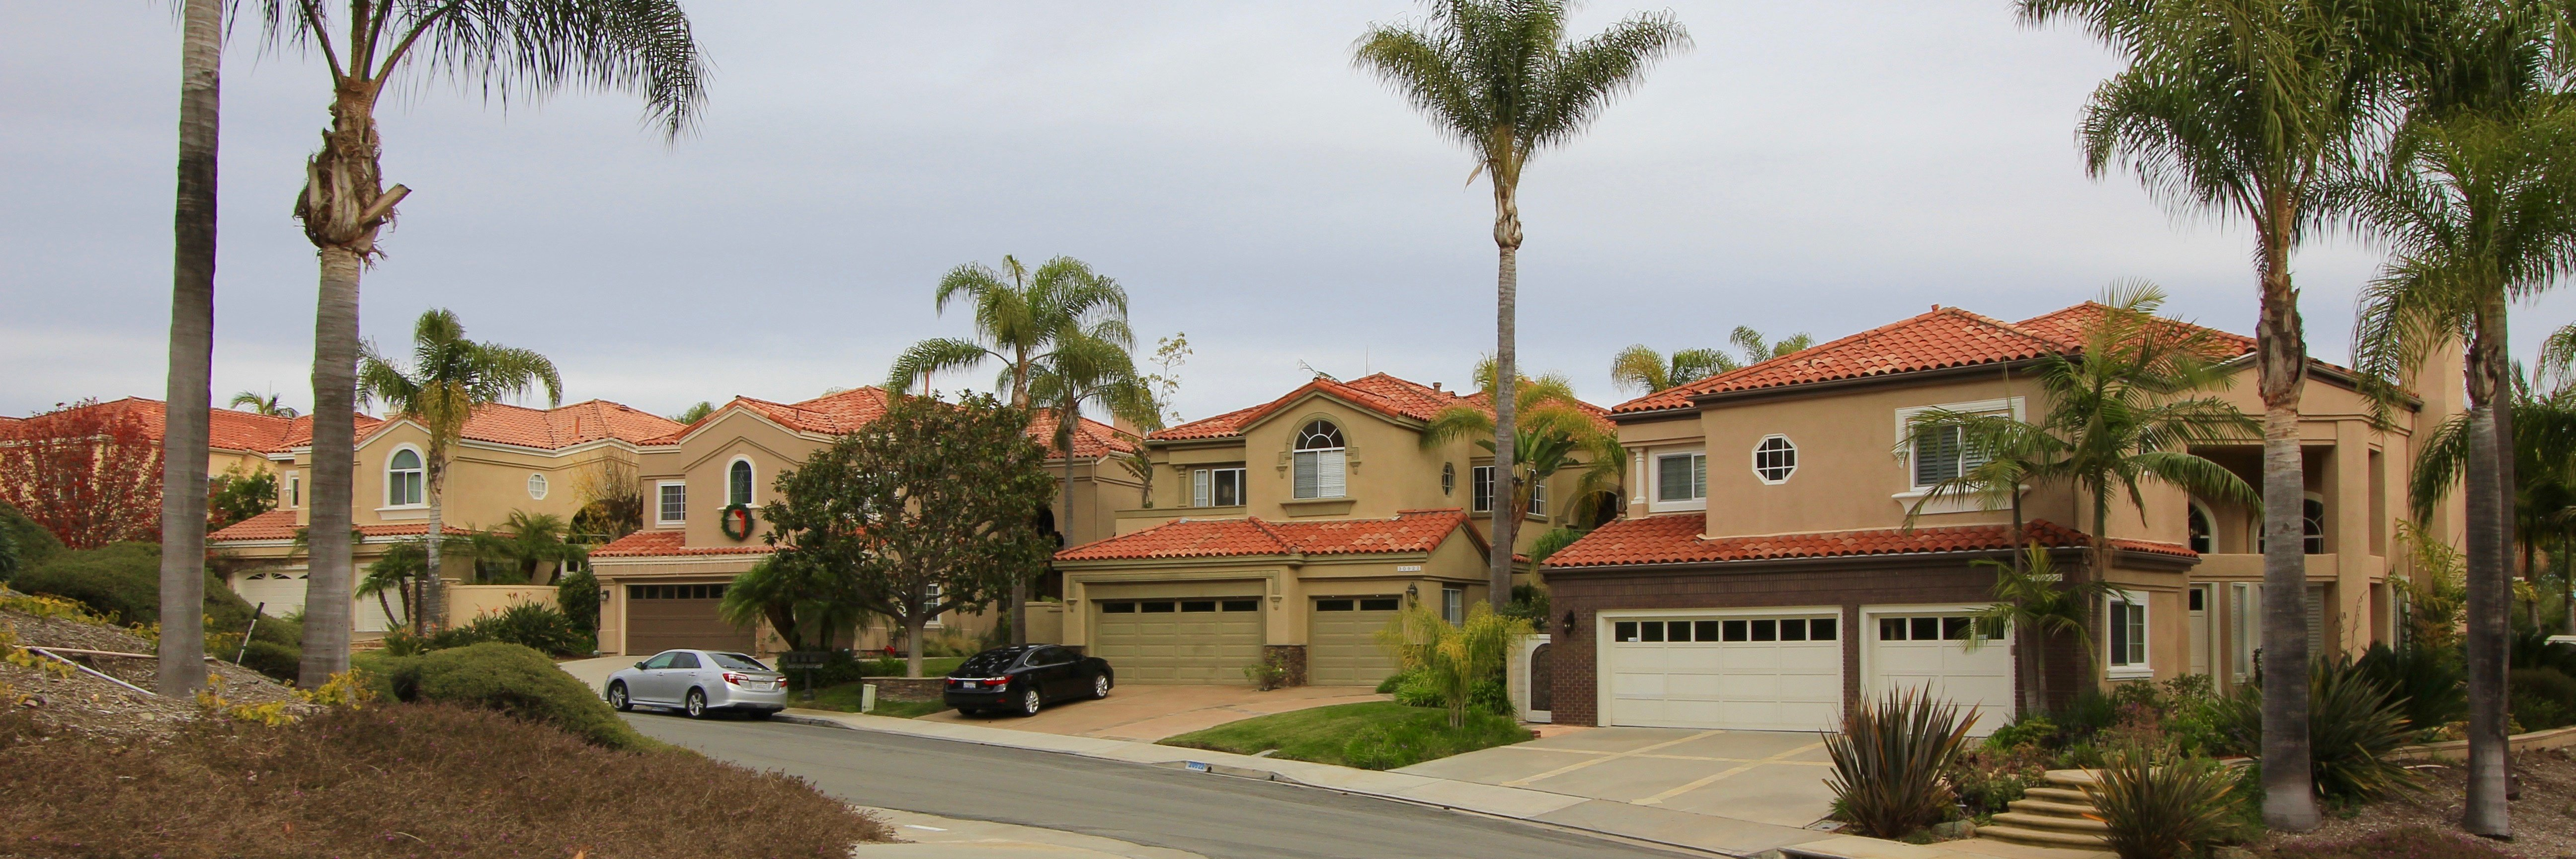 Belle Maison is a neighborhood of homes located in Laguna Niguel California